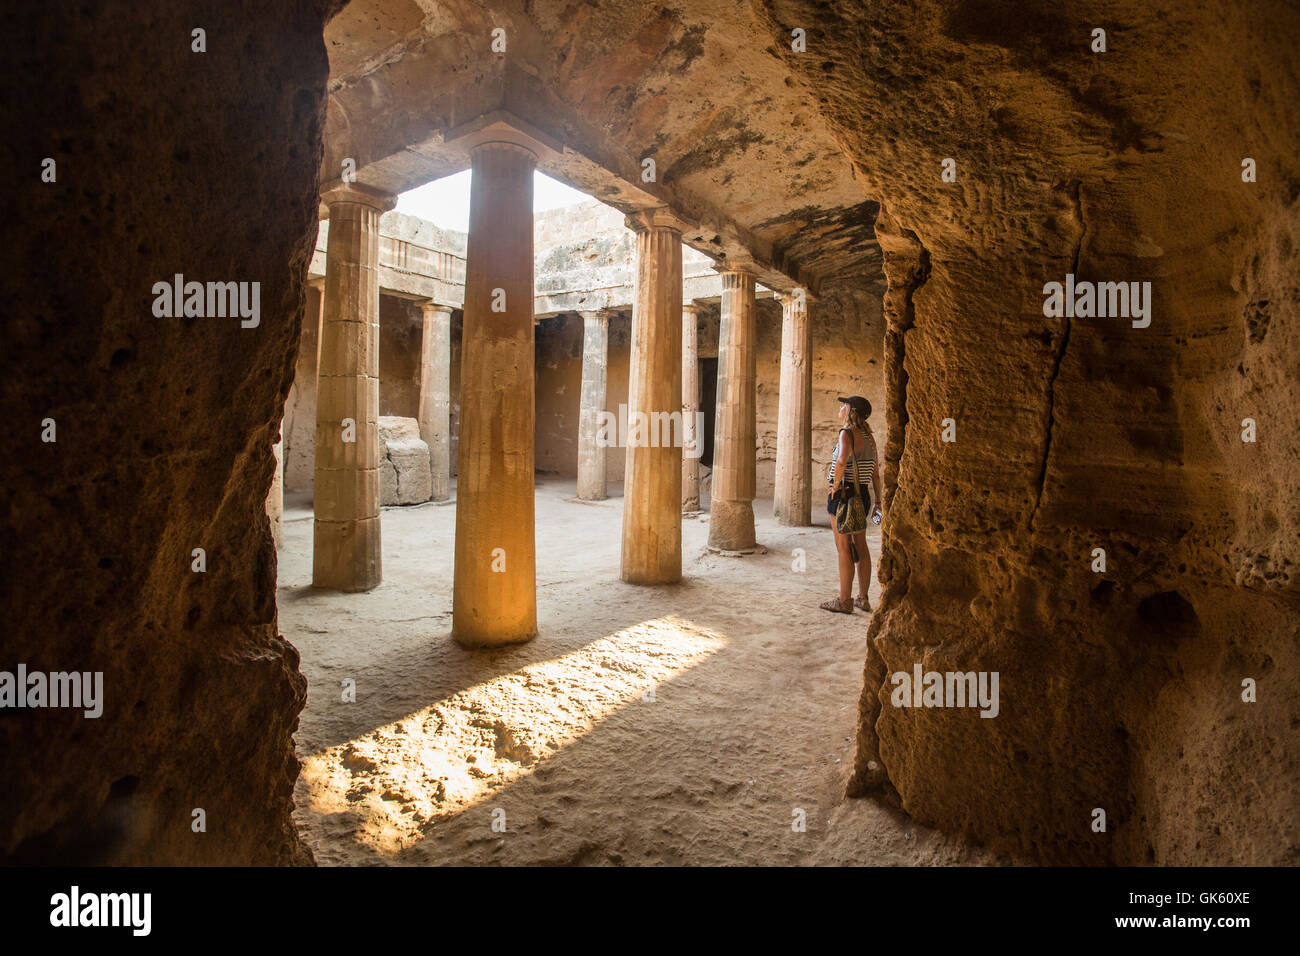 UNESCO World Heritage Site the Tombs of the Kings in Paphos, Cyprus. Stock Photo